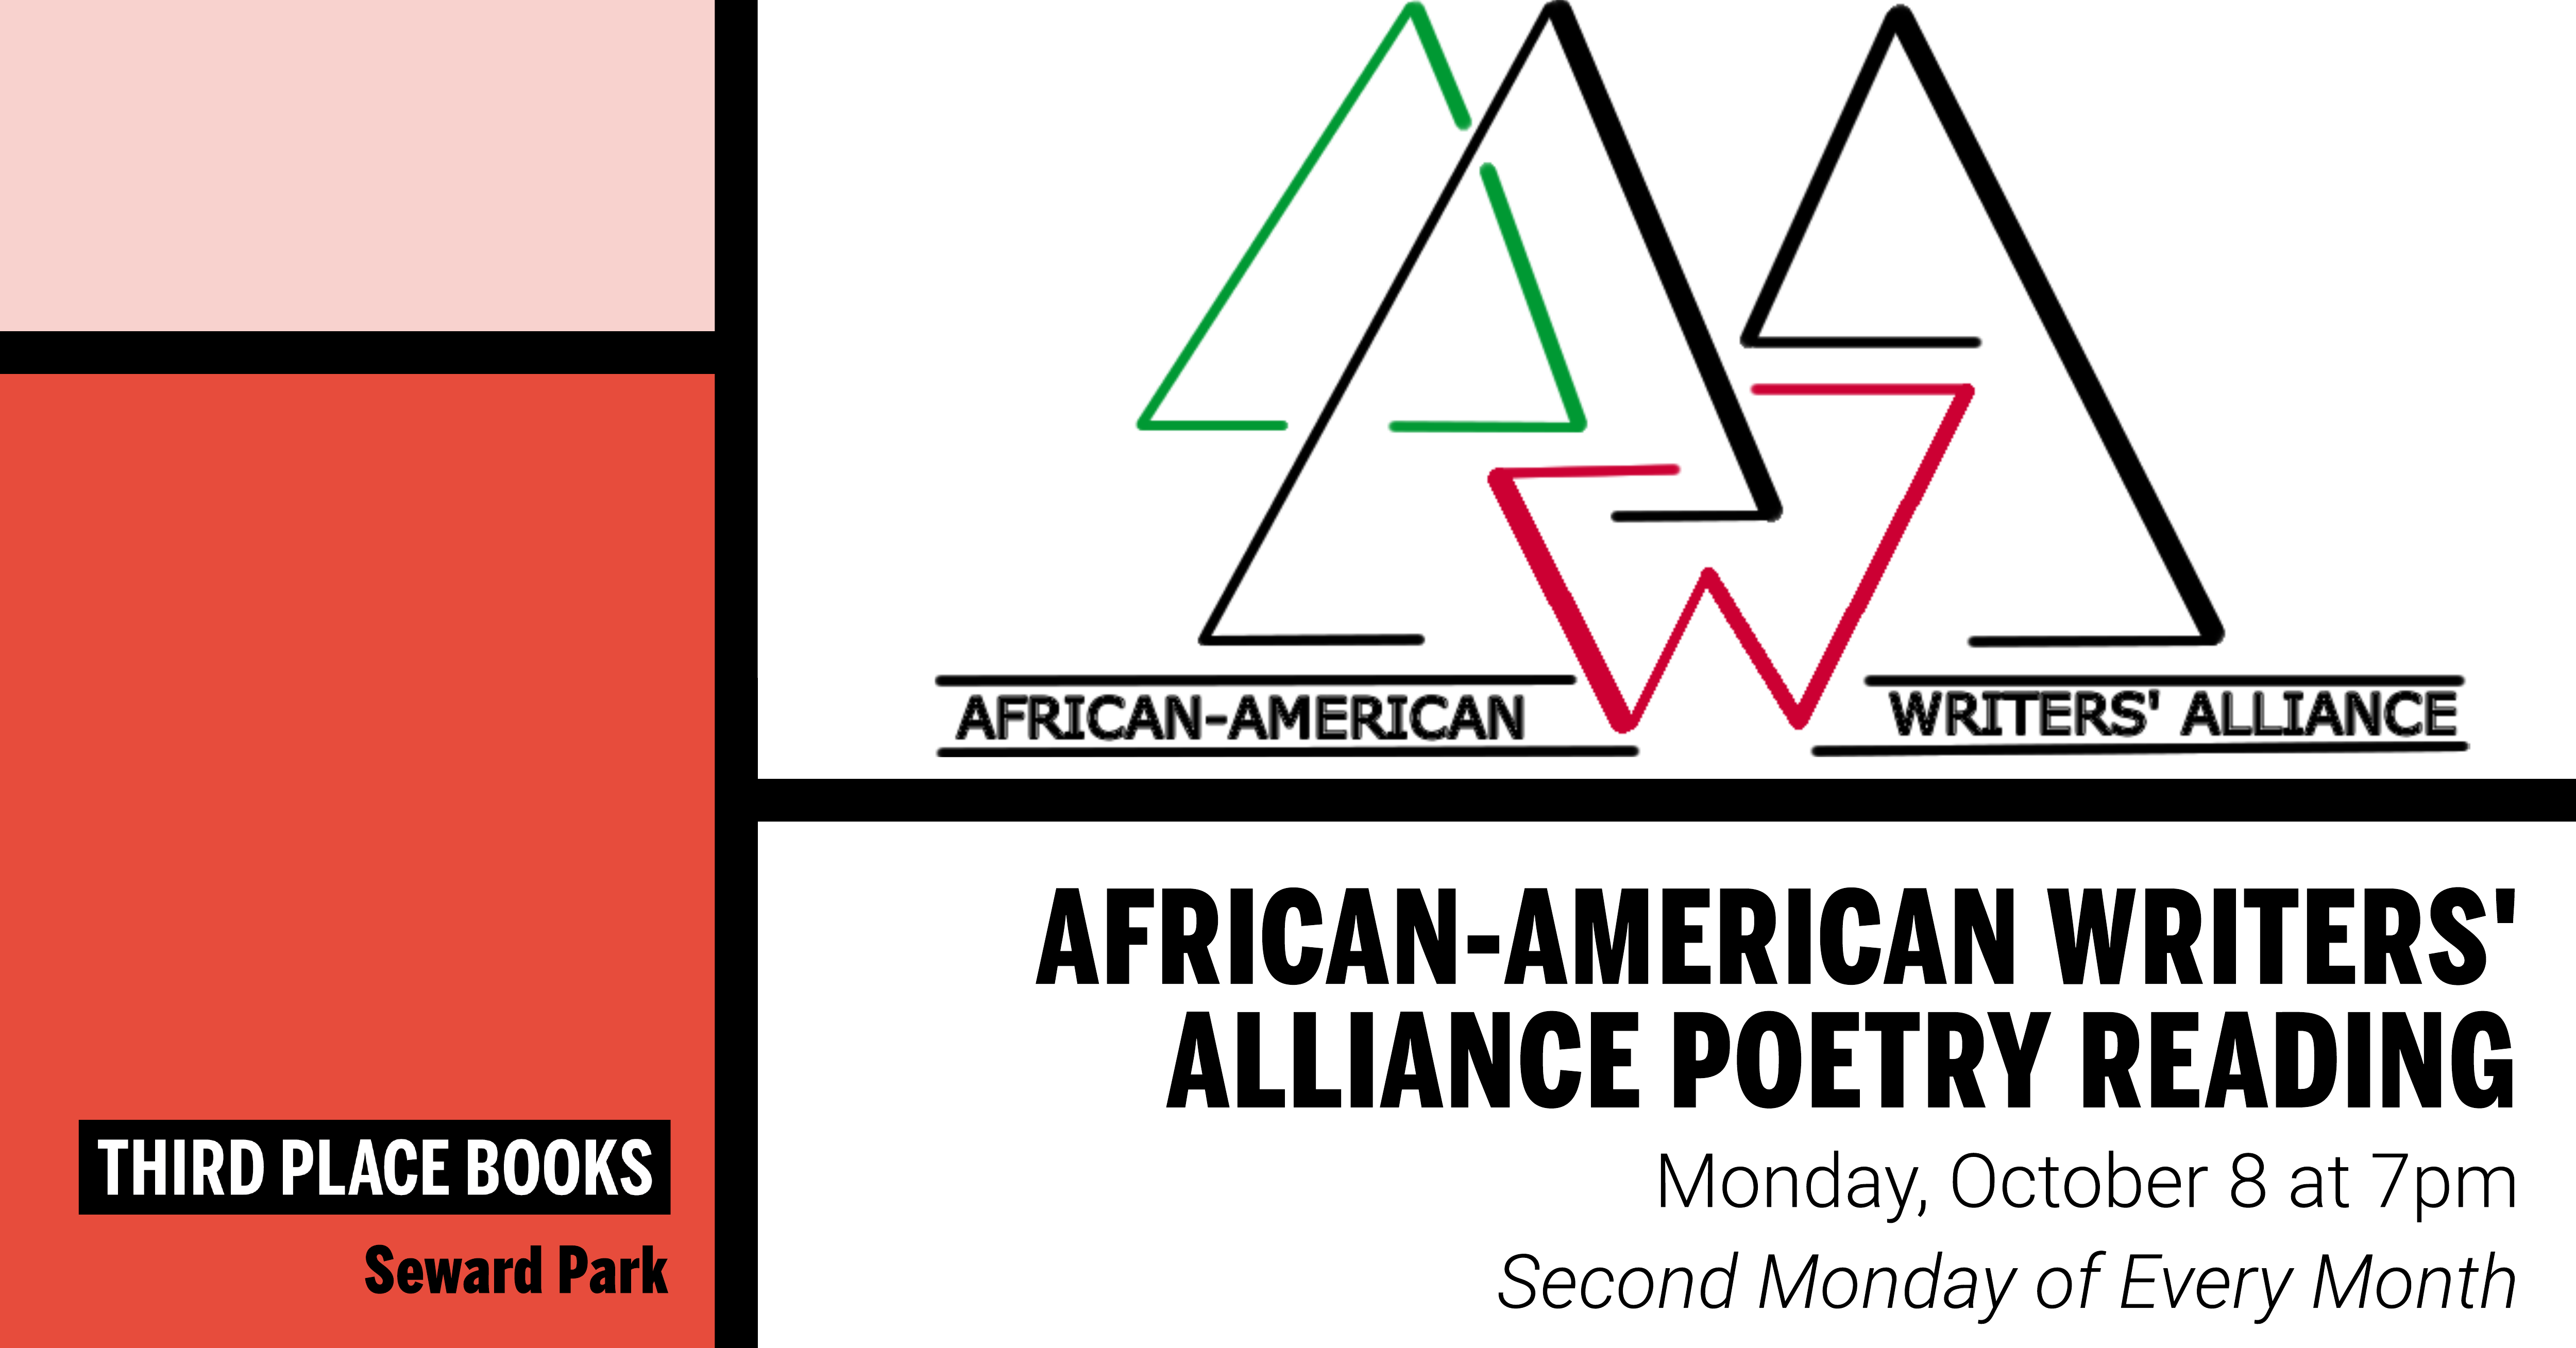 African-American Writers' Alliance Poetry Reading on Monday, October 8 at 7pm